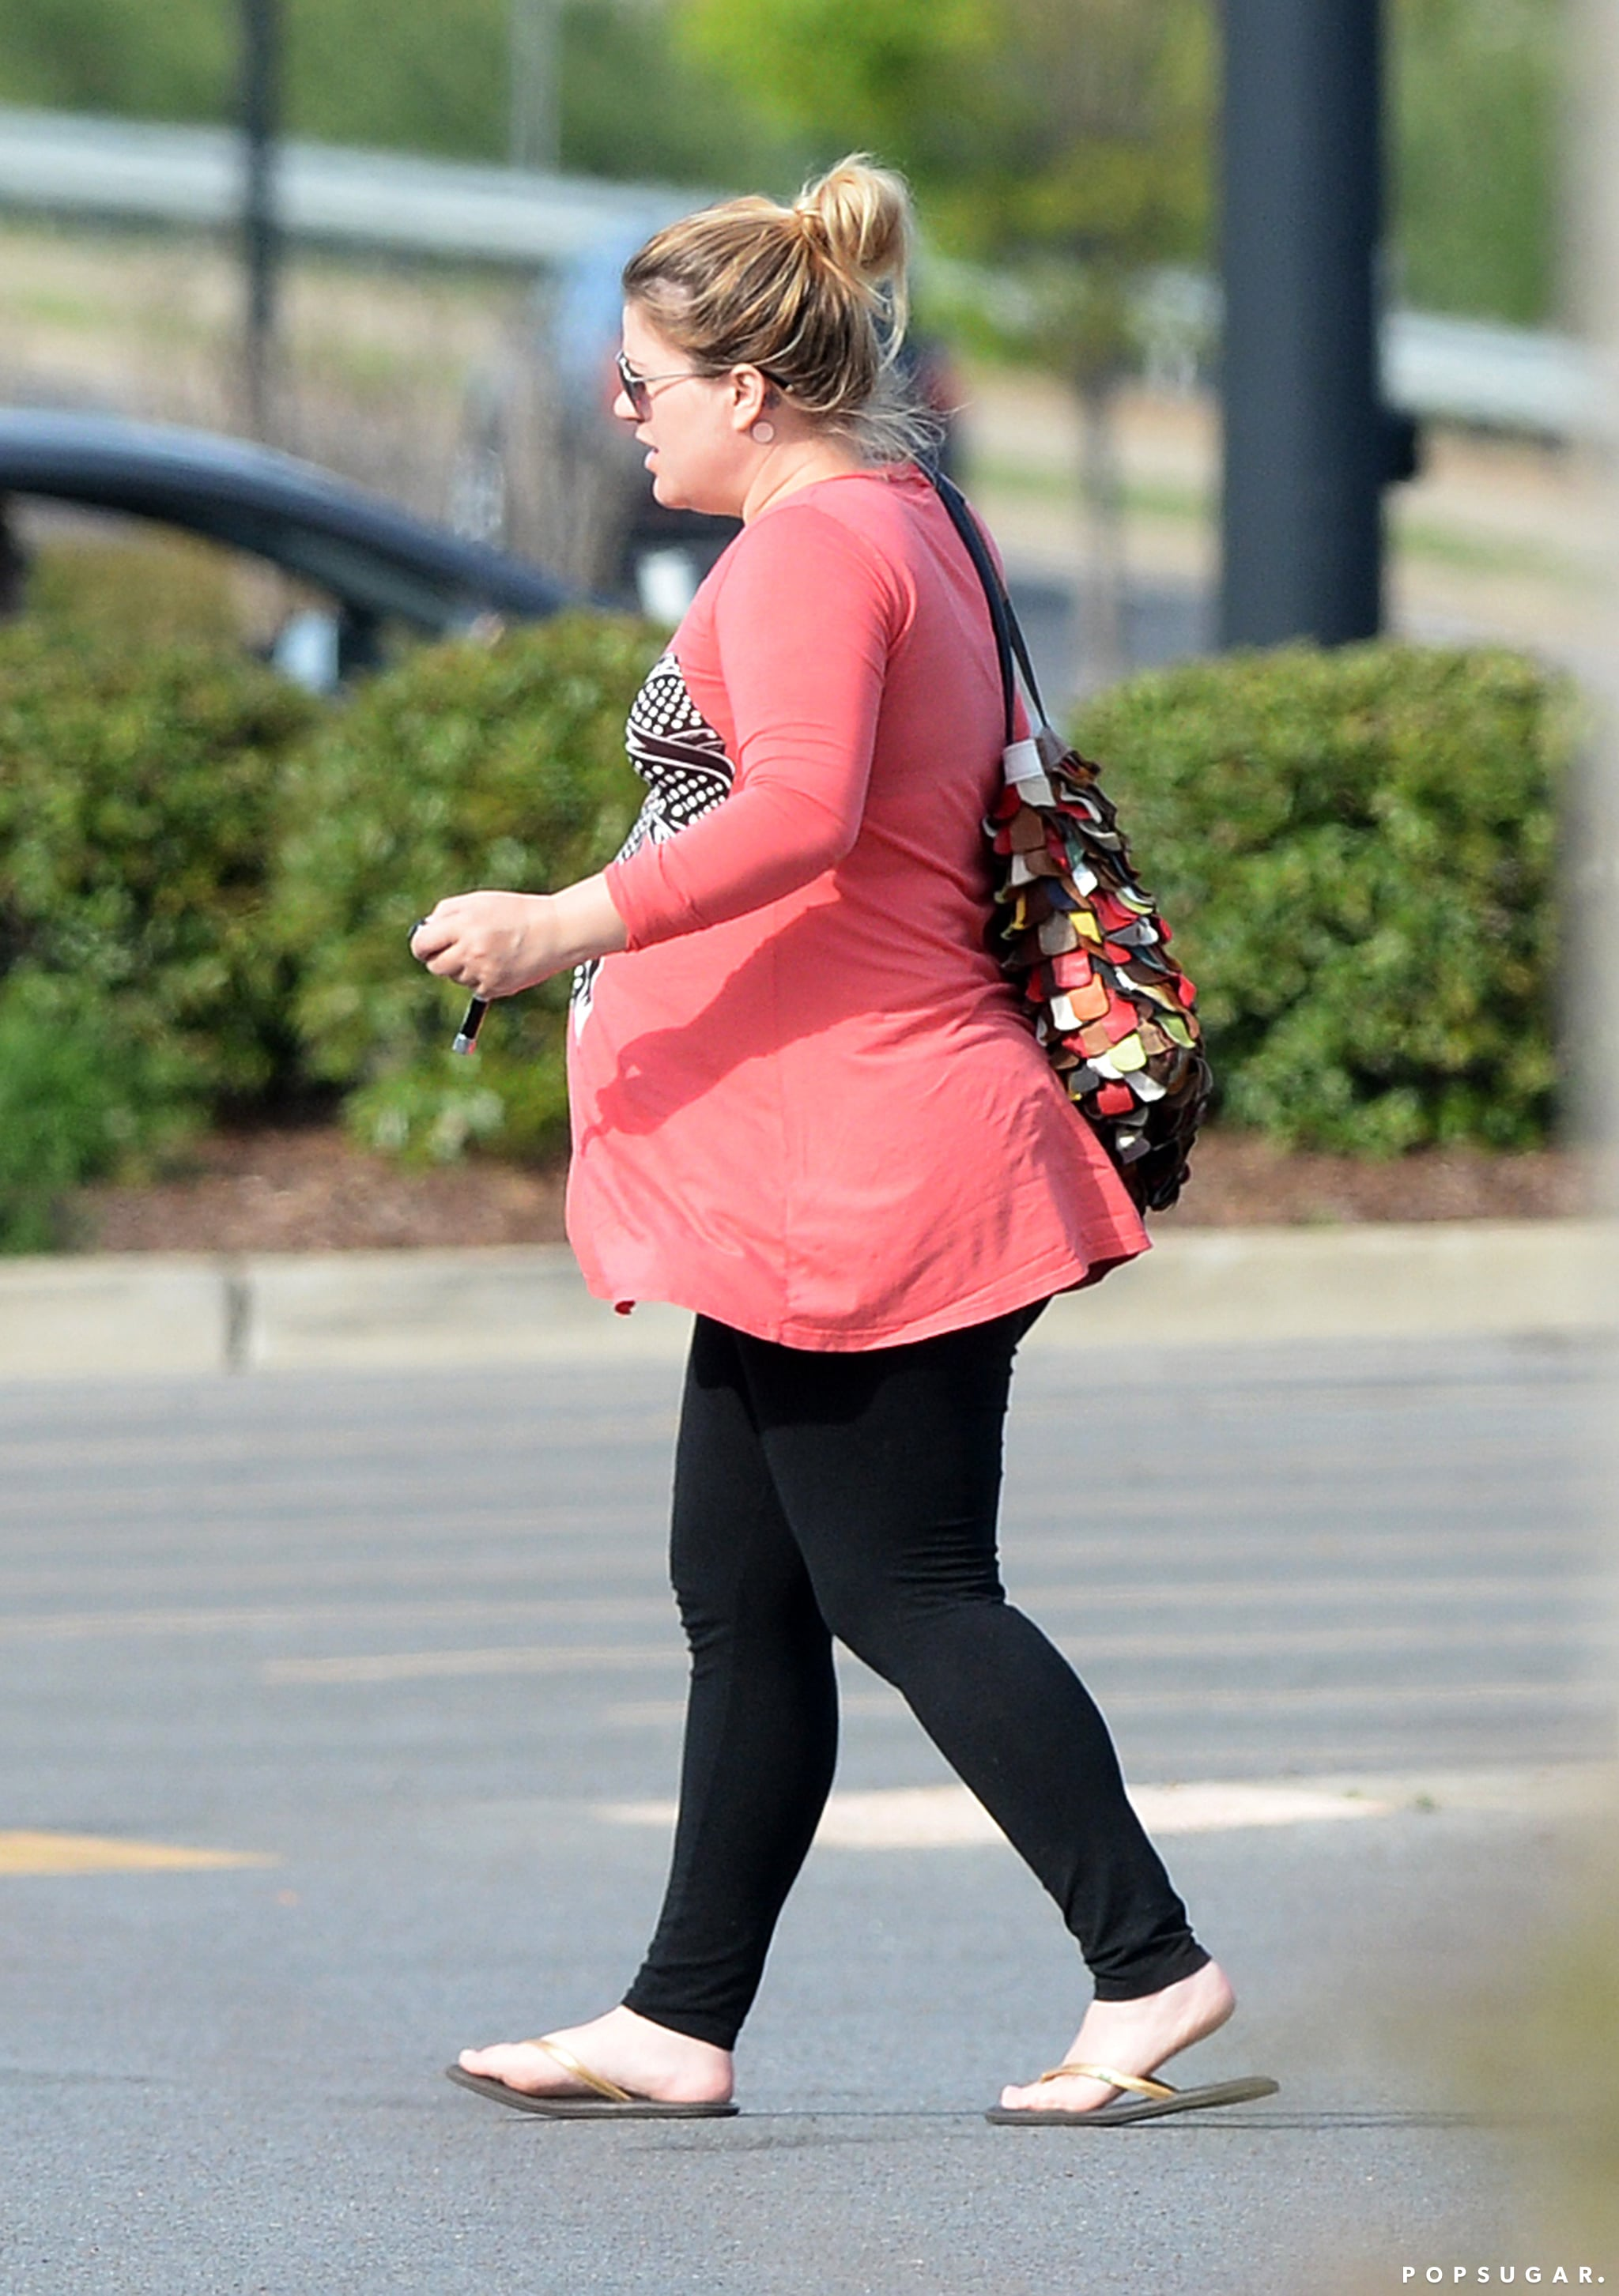 See Kelly Clarkson's Baby Bump!